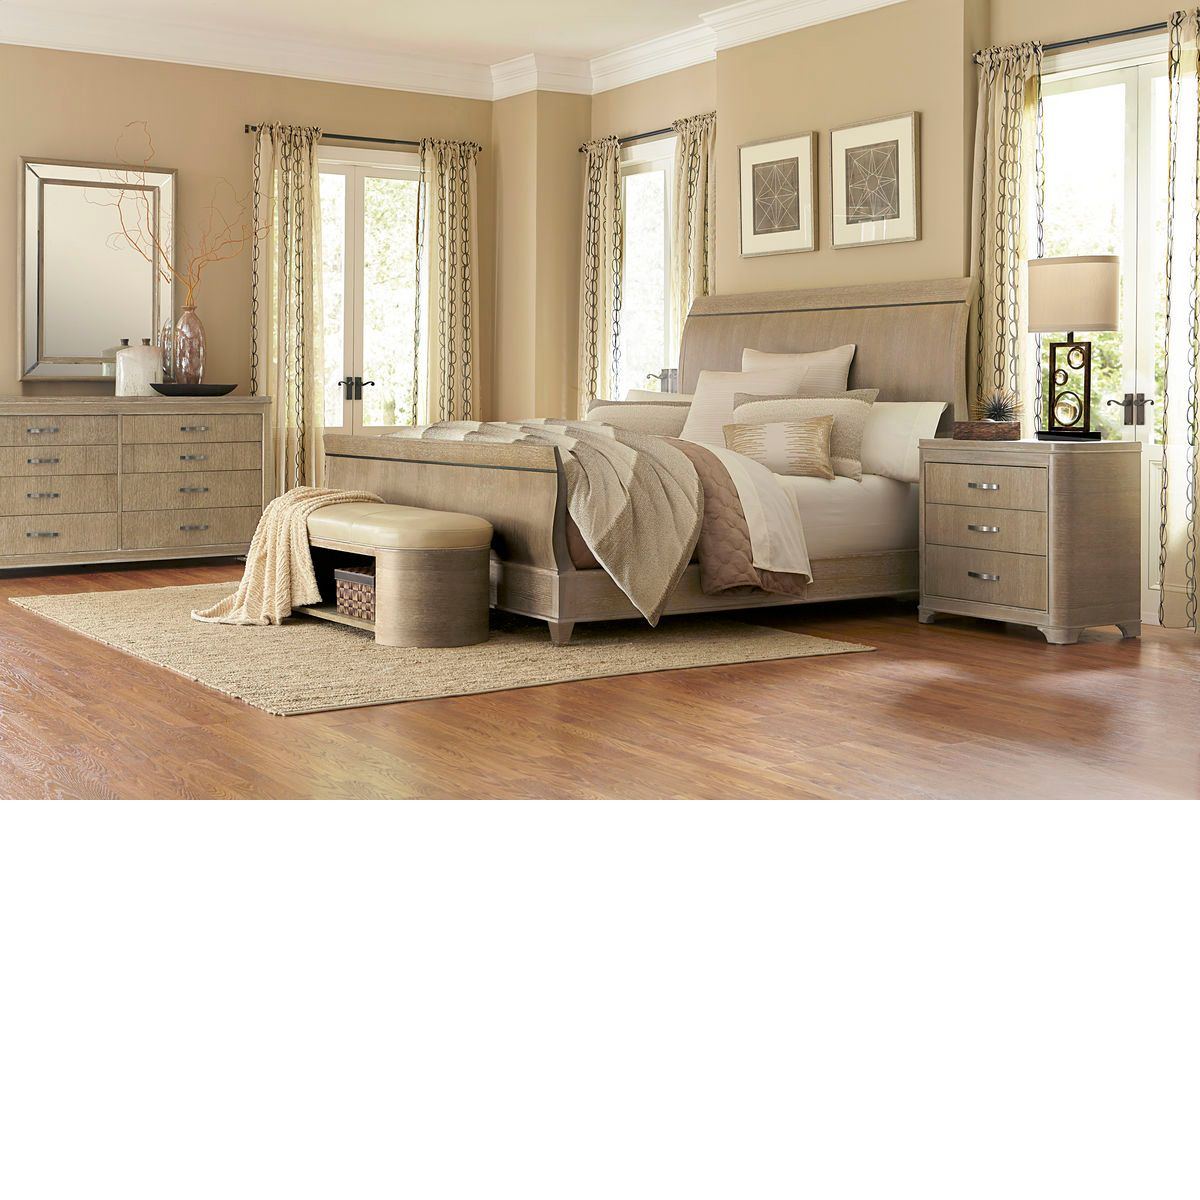 Furniture, Dump Furniture, Furniture Outlet